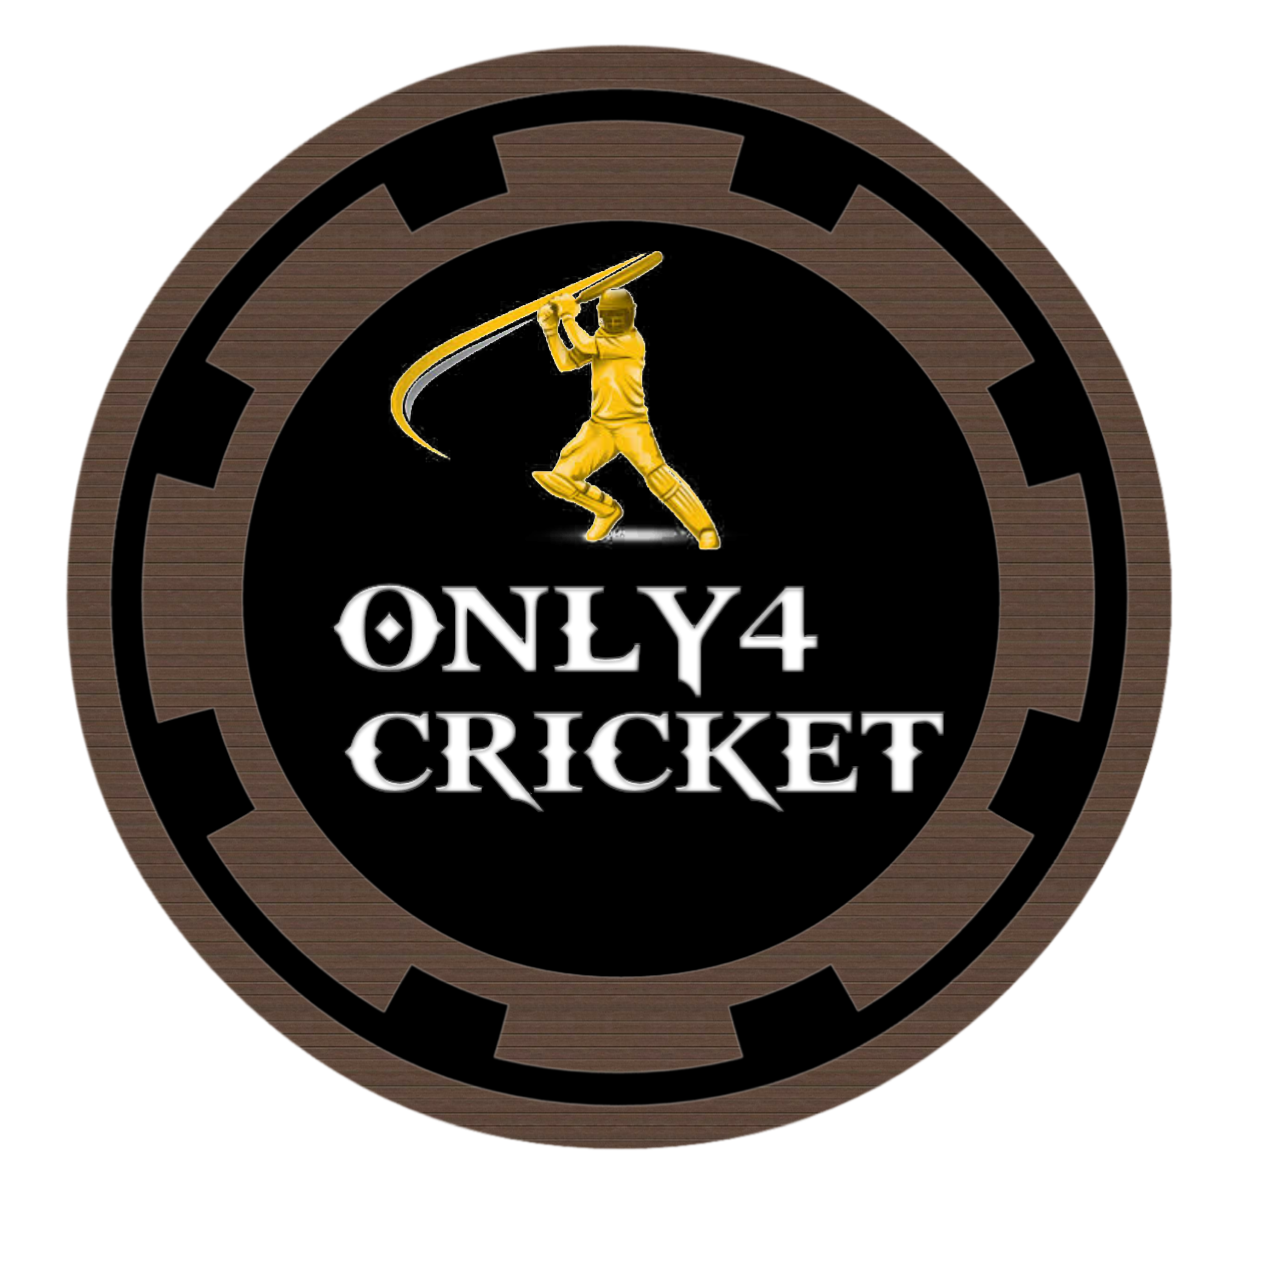 Only4cricket